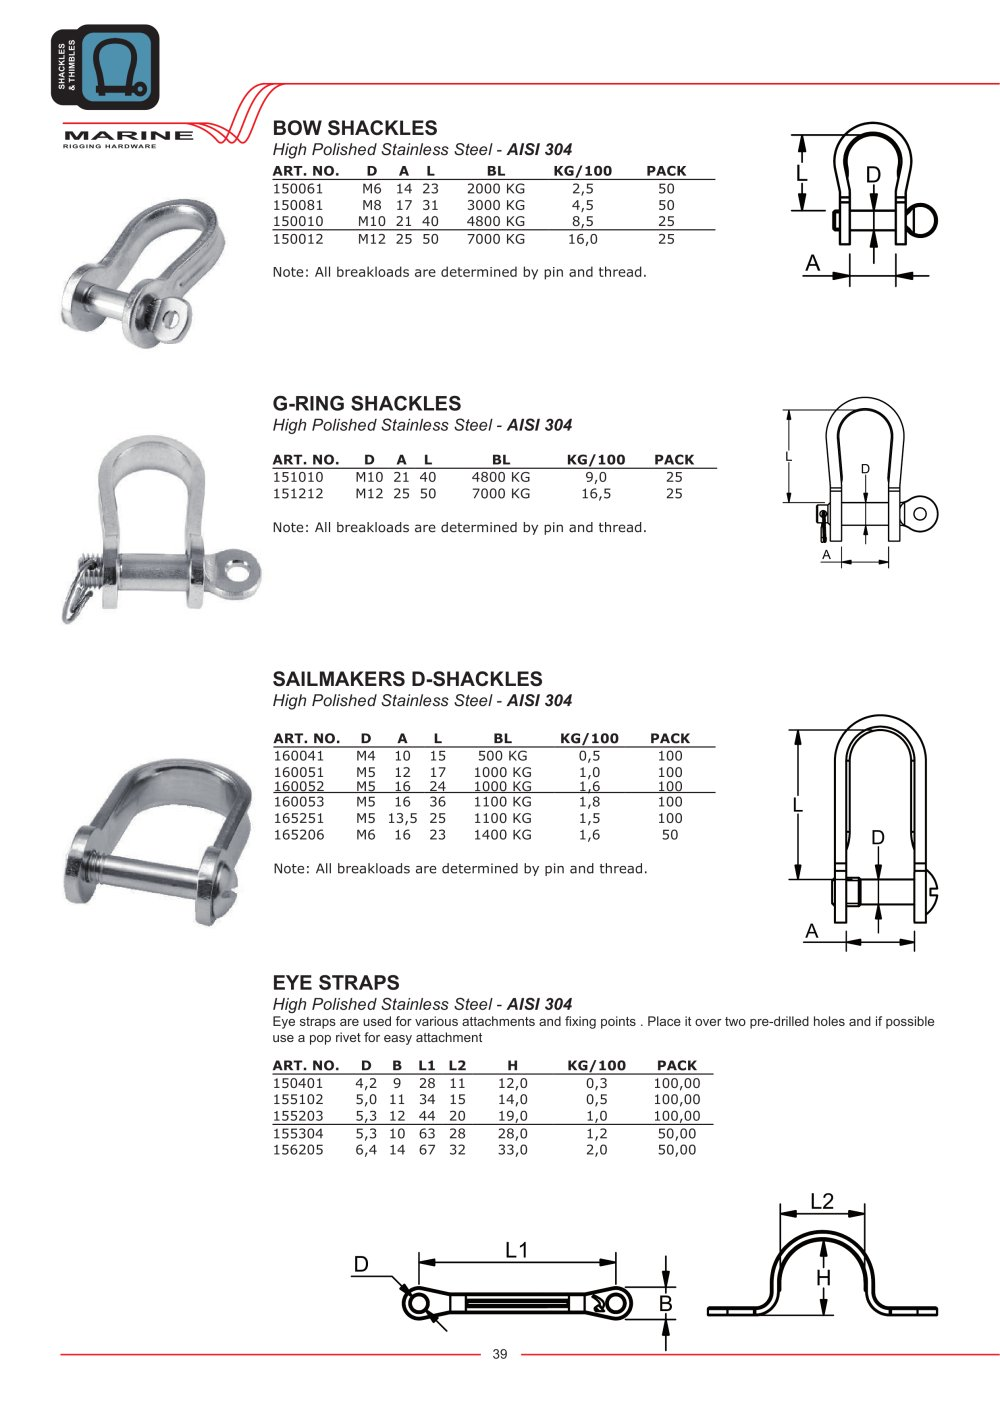 Luxury Wire Rope Attachments Images - Electrical Diagram Ideas ...